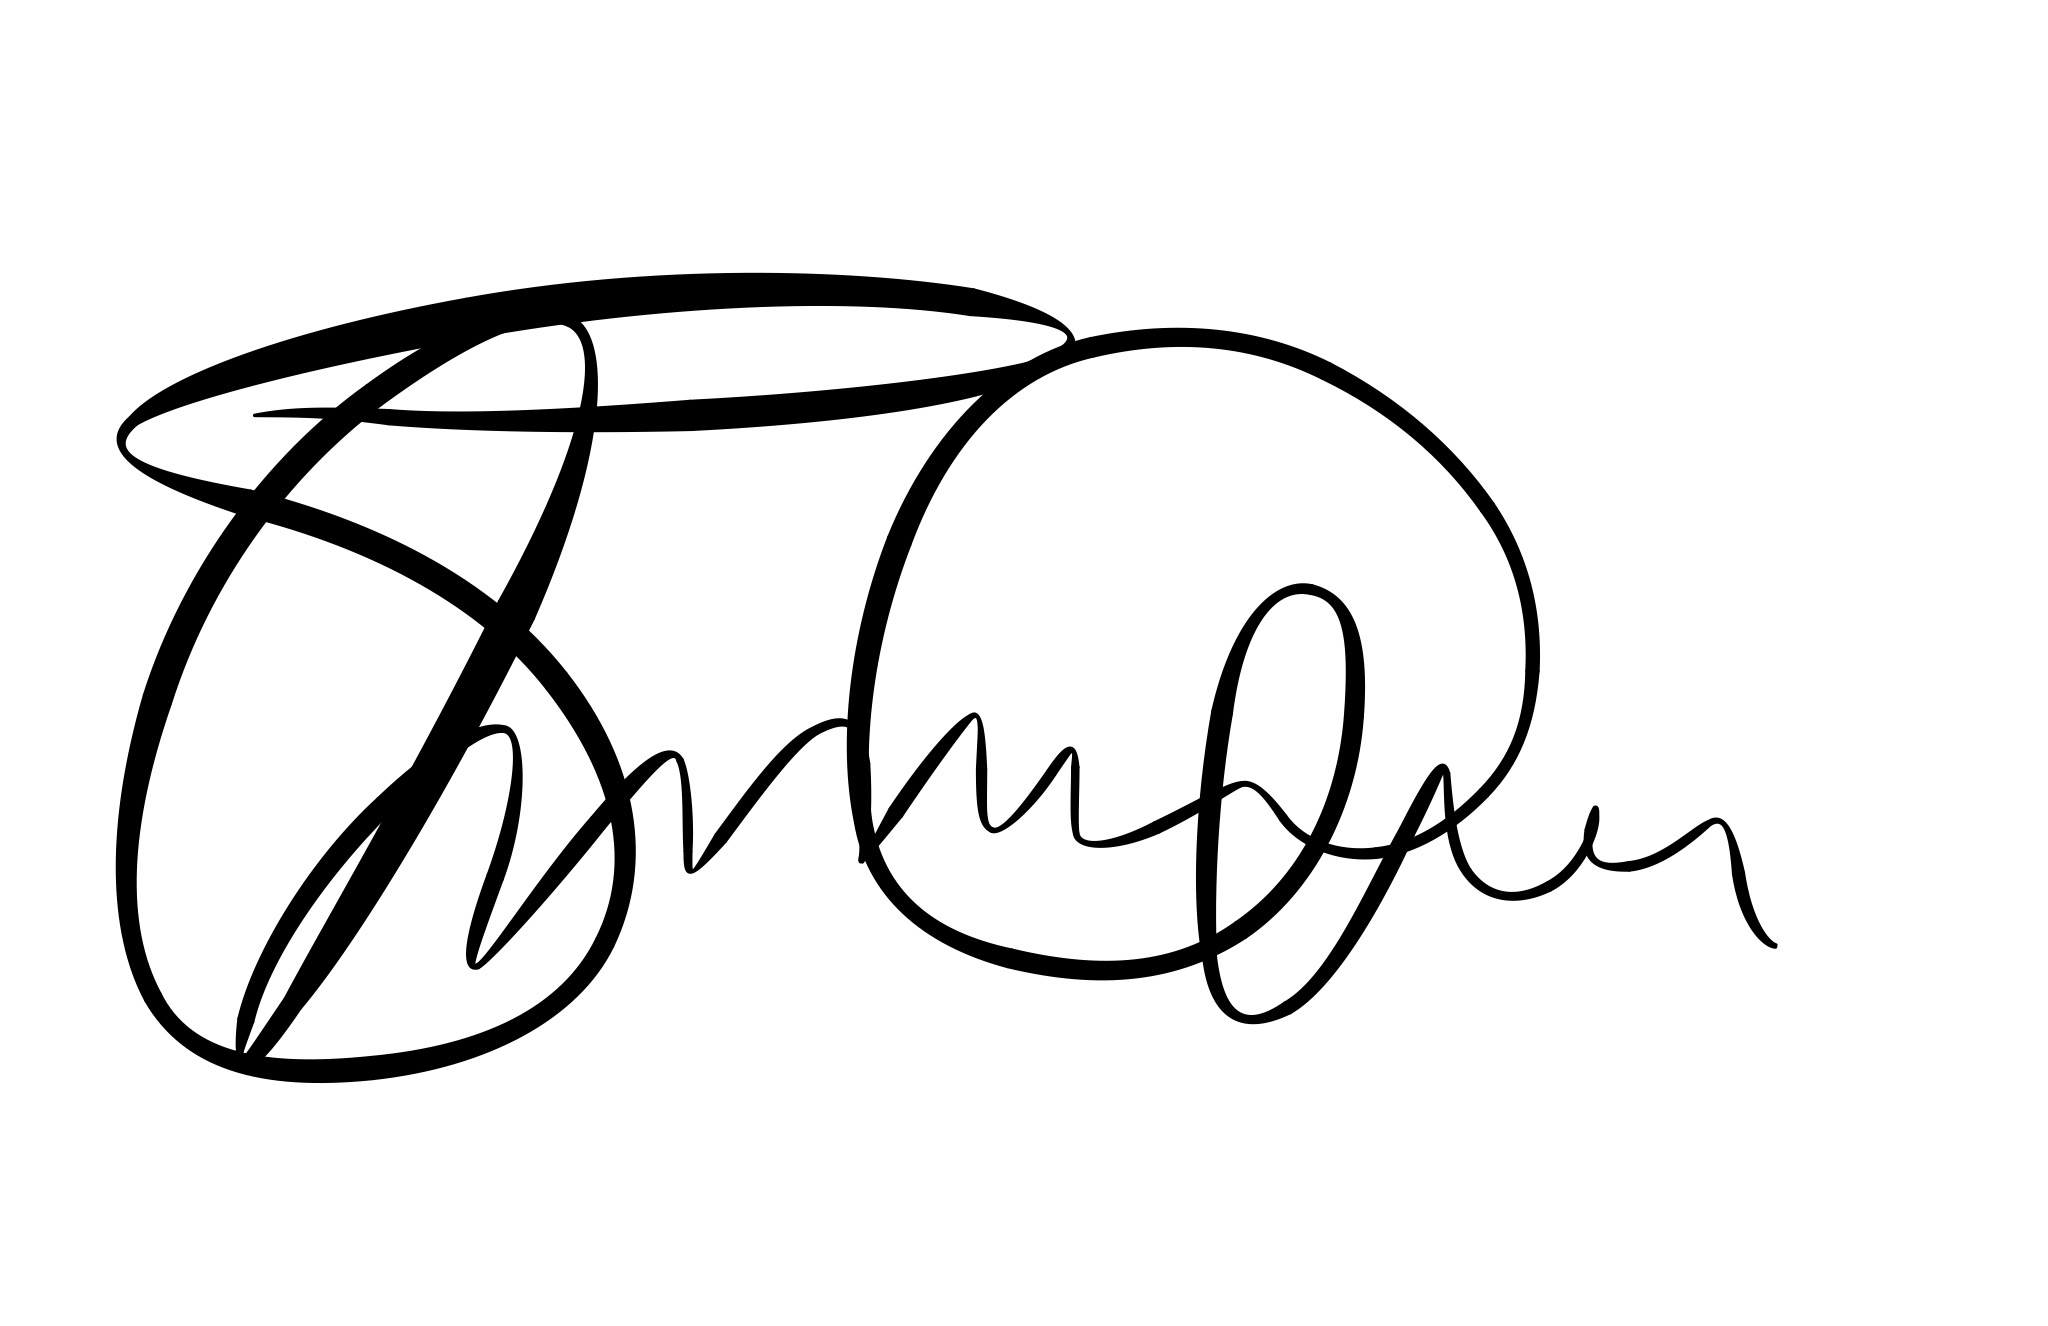 Shawn Owen's Signature